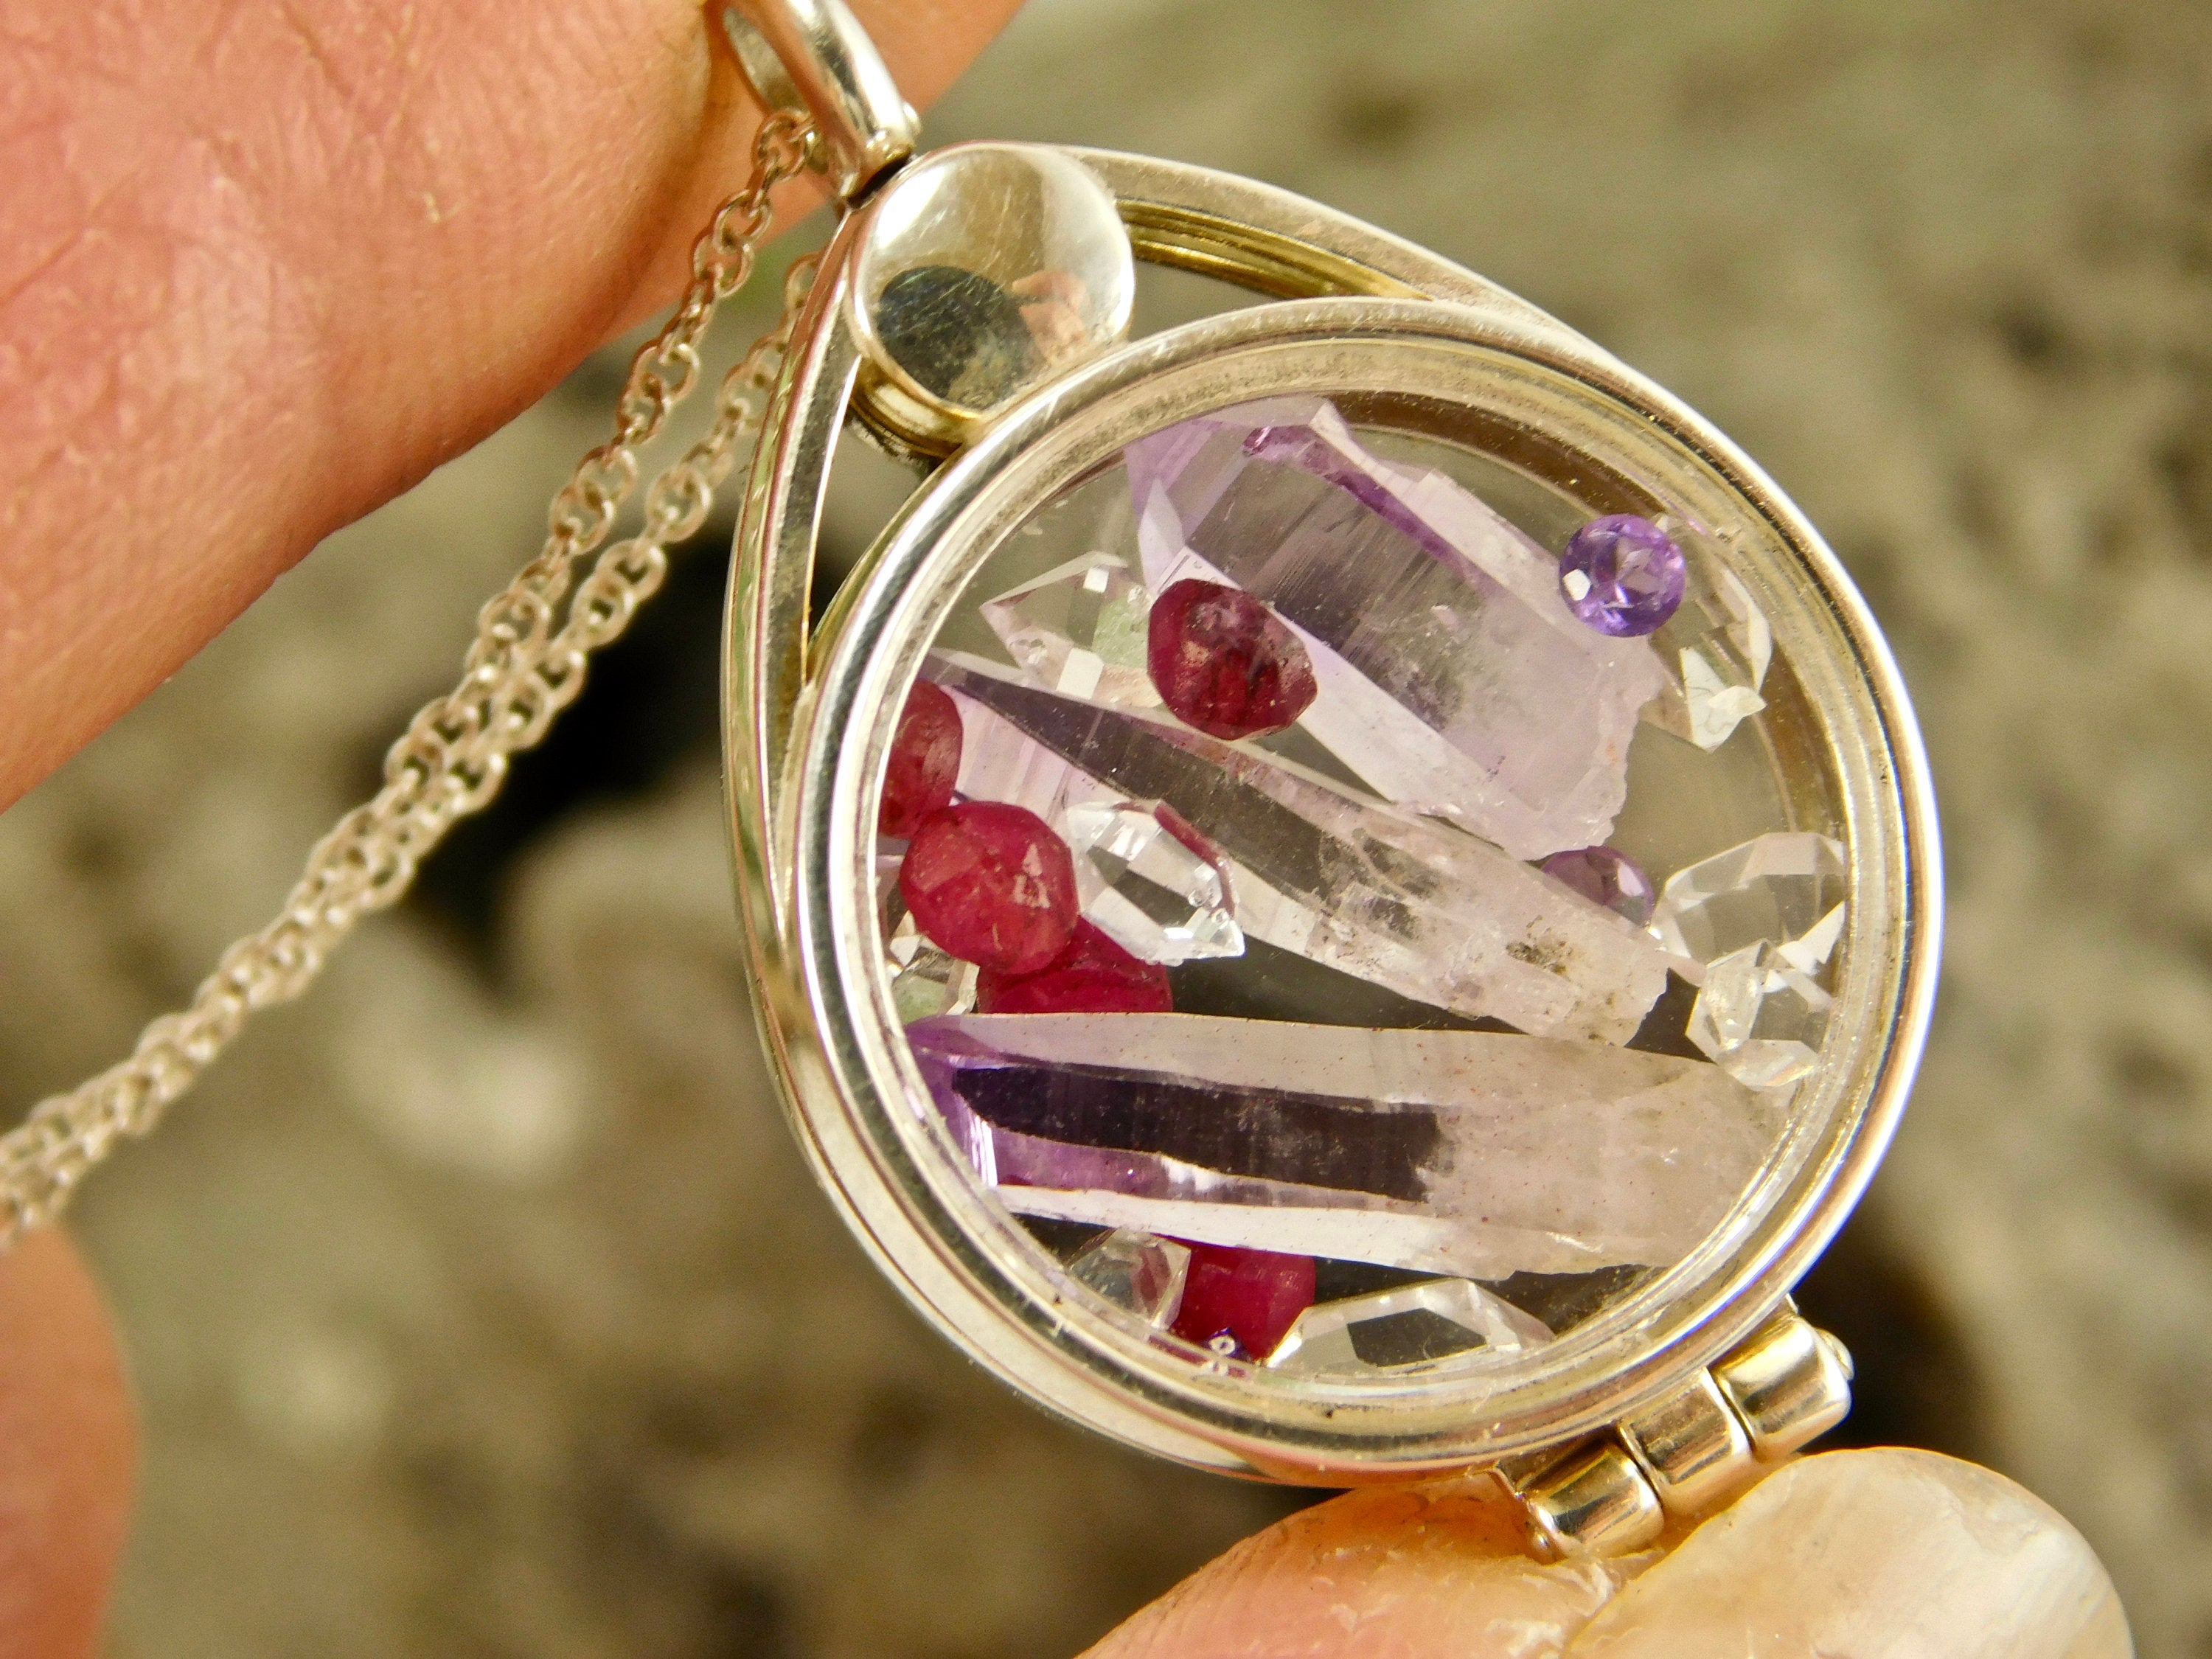 Ruby + Vera Cruz Amethyst Crystal Point + Ny Herkimer Diamond Quartz  Crystals In A Floating Locket Sterling Silver Pendant Necklace Jewelry Pertaining To Most Recently Released Faceted Locket Dangle Charm, Synthetic Amethyst Necklaces (Gallery 23 of 25)